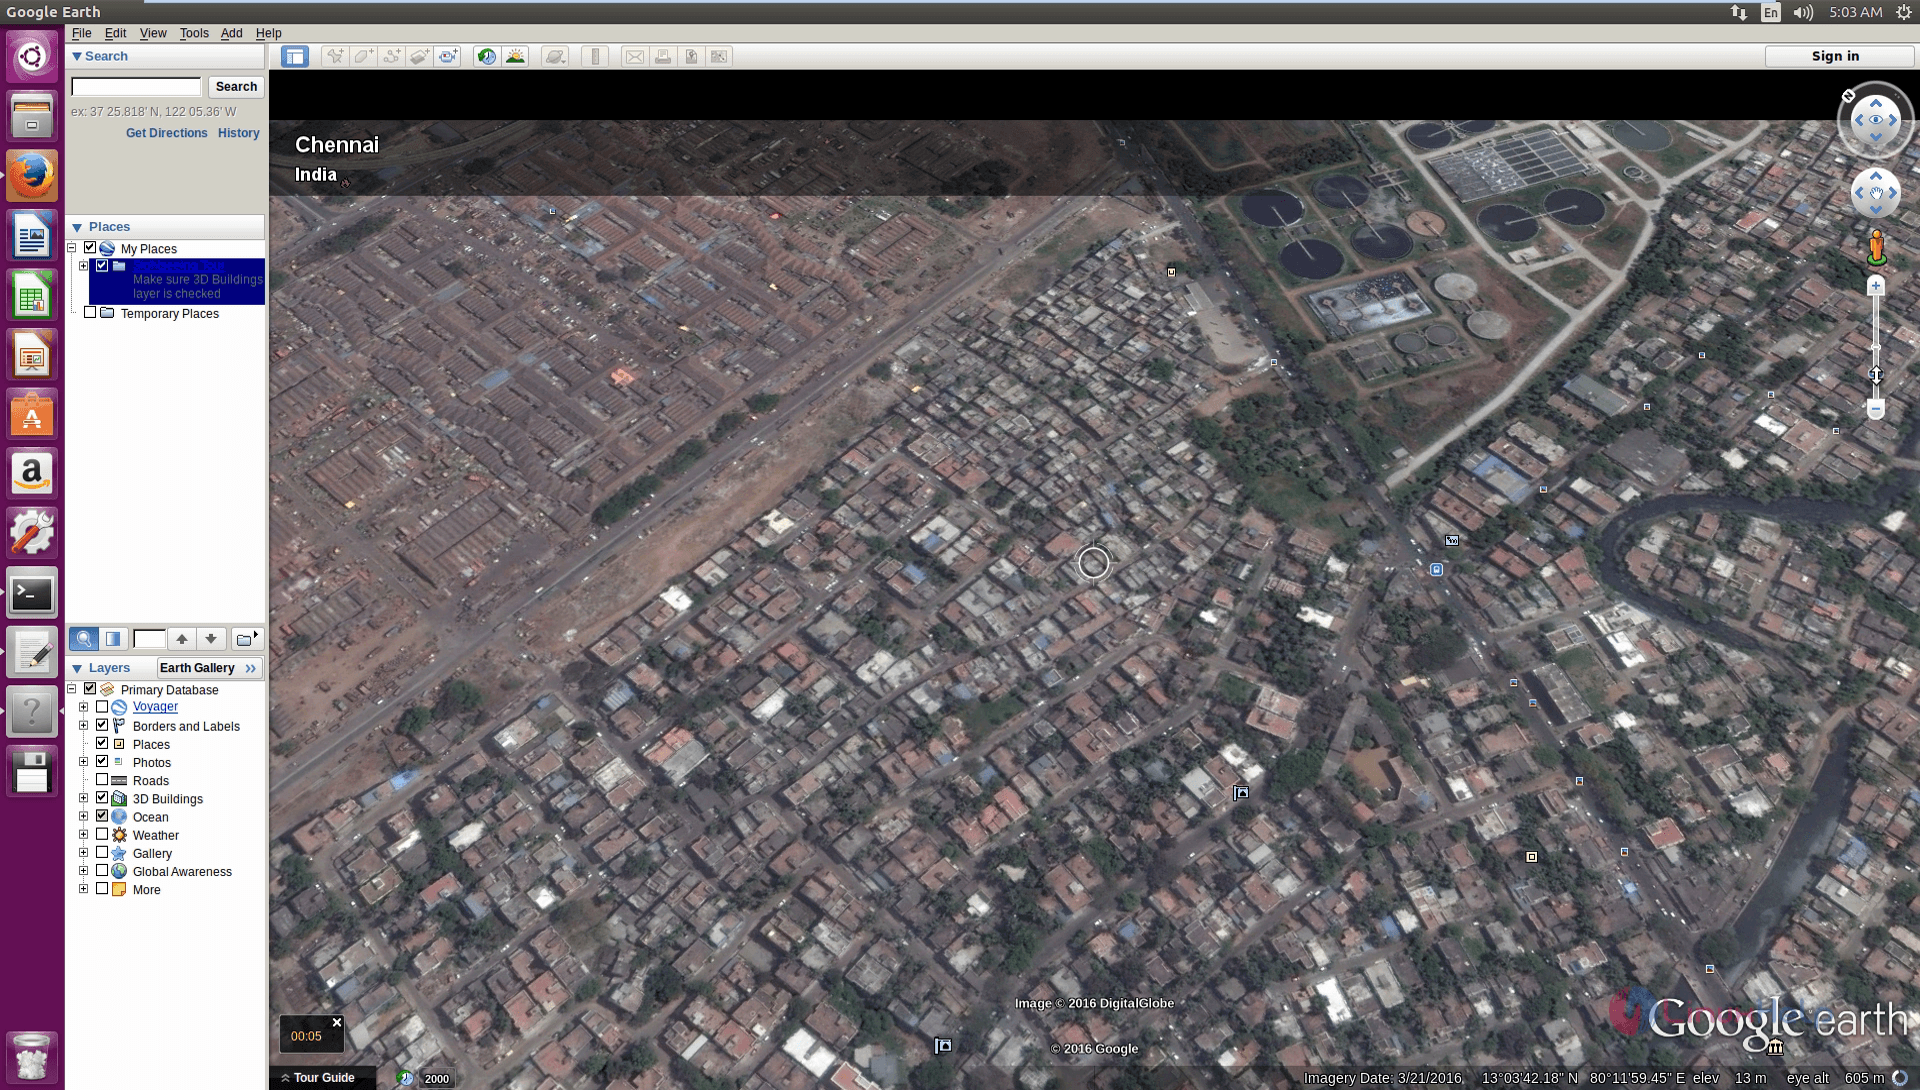 Installation_Google_Earth_Ubuntu16.04_Zoom_in_and_Zoom_out